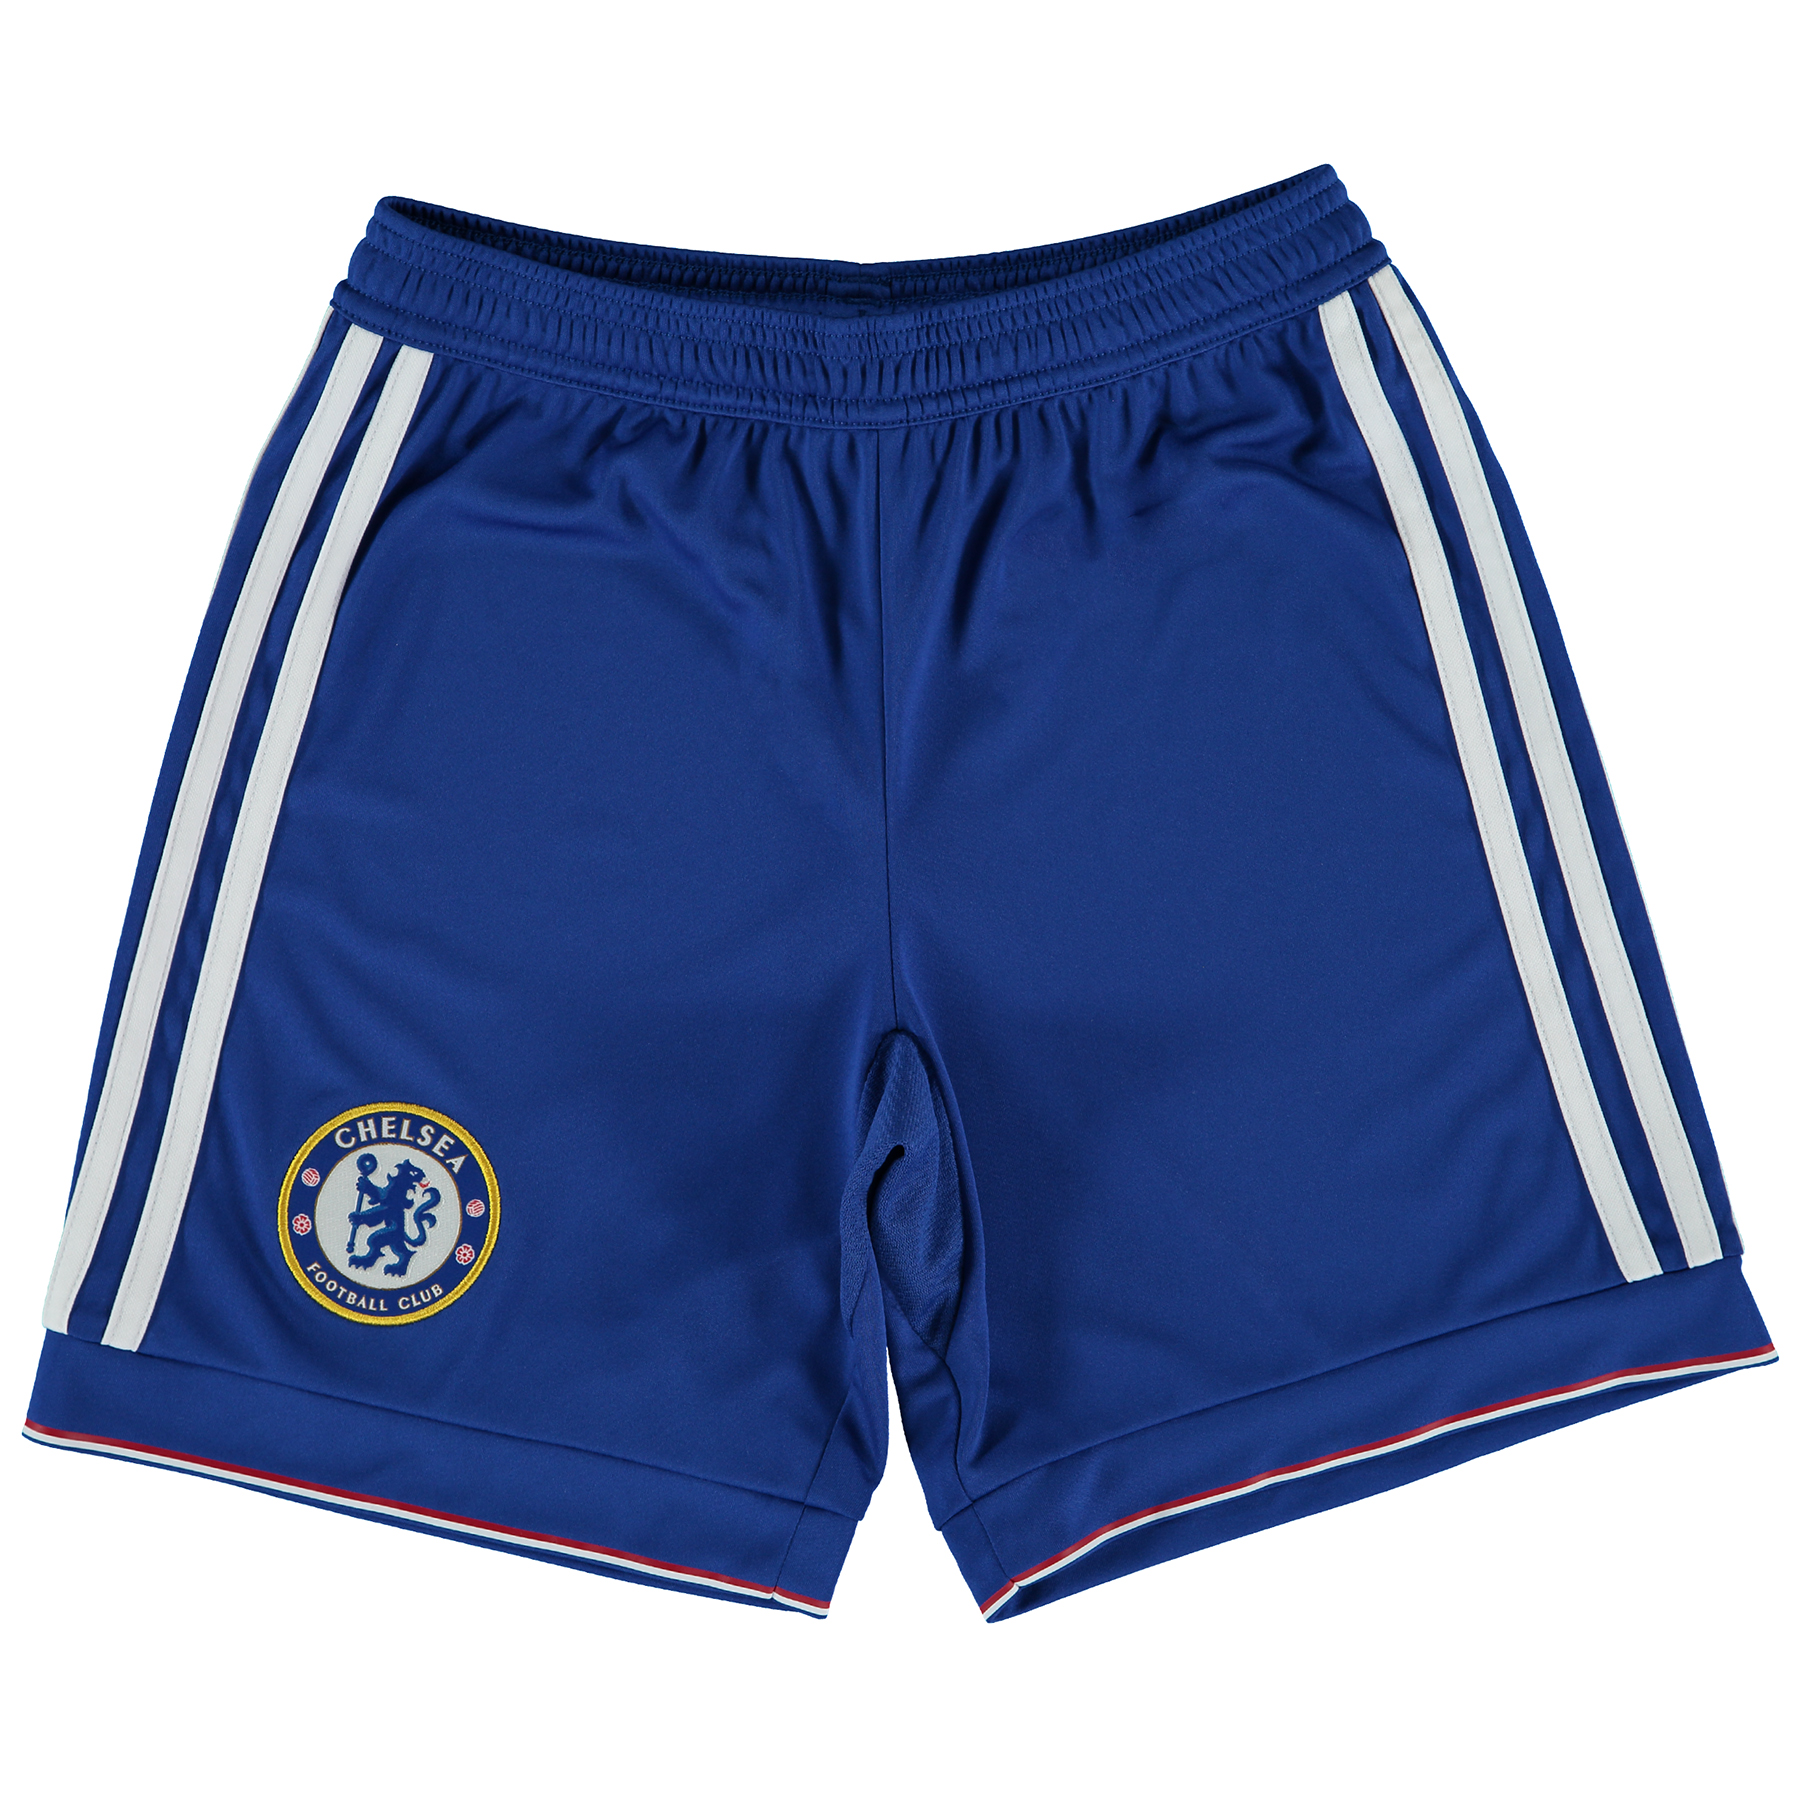 Chelsea Home Shorts 2015/16 - Kids Show your support for your favourite club with the new Chelsea Home Shorts 2015/16. Young fans can develop their footwork with these new football shorts. Showing Chelsea's team badge above the right hem, they feature climacool® ventilation that helps keep you cool and dry. Join the likes of Champions Diego Costa, Cesc Fabregas and Eden Hazard and order your new Chelsea shorts today! Benefits CLIMACOOL® Provides heat and moisture management through ventilation Club crest: woven badge Without inner mesh brief 100% rec. Polyester